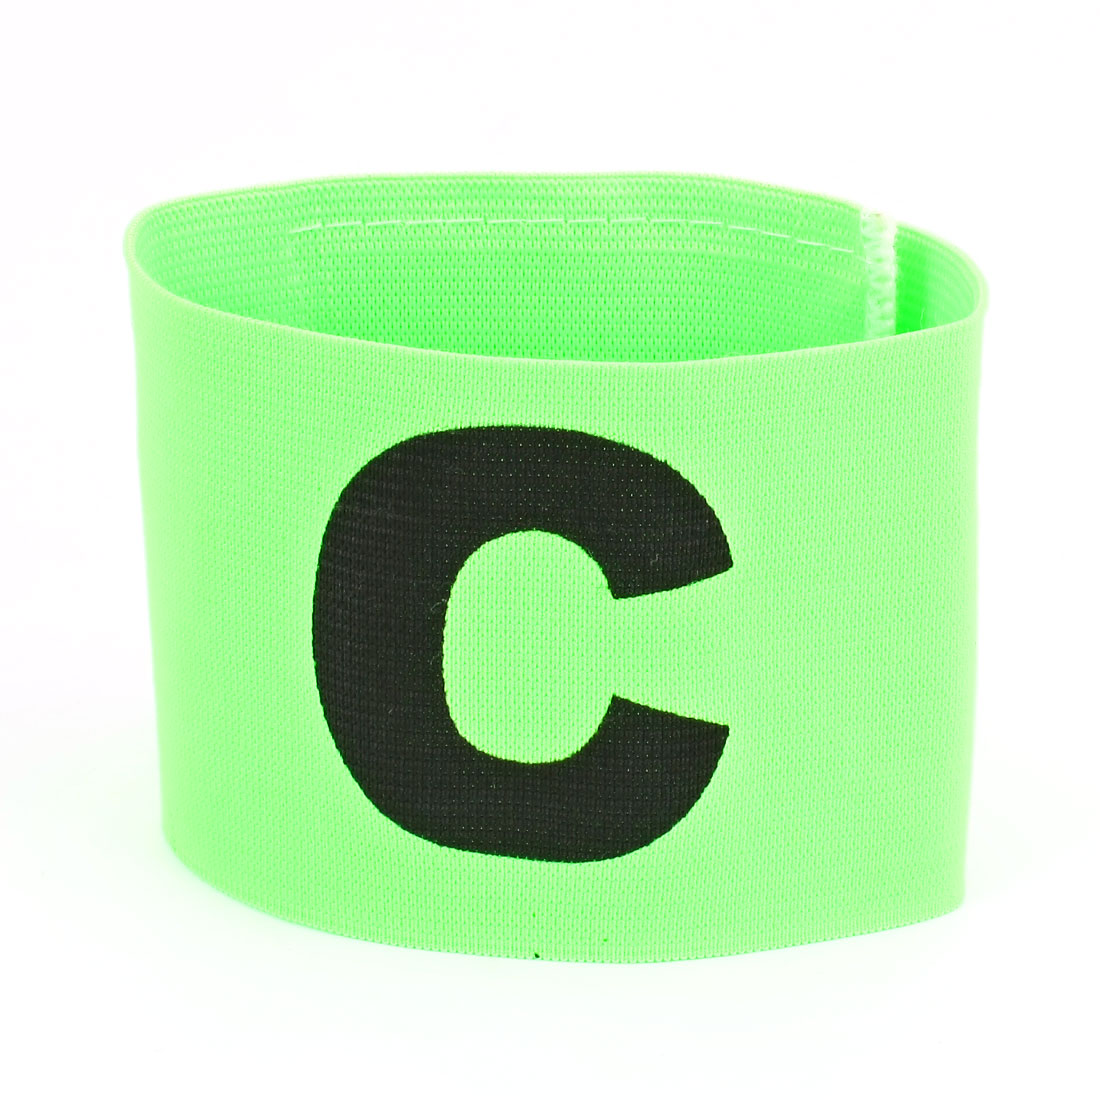 Character C Printed Football Game Hook Loop Closure Elastic Armband Green